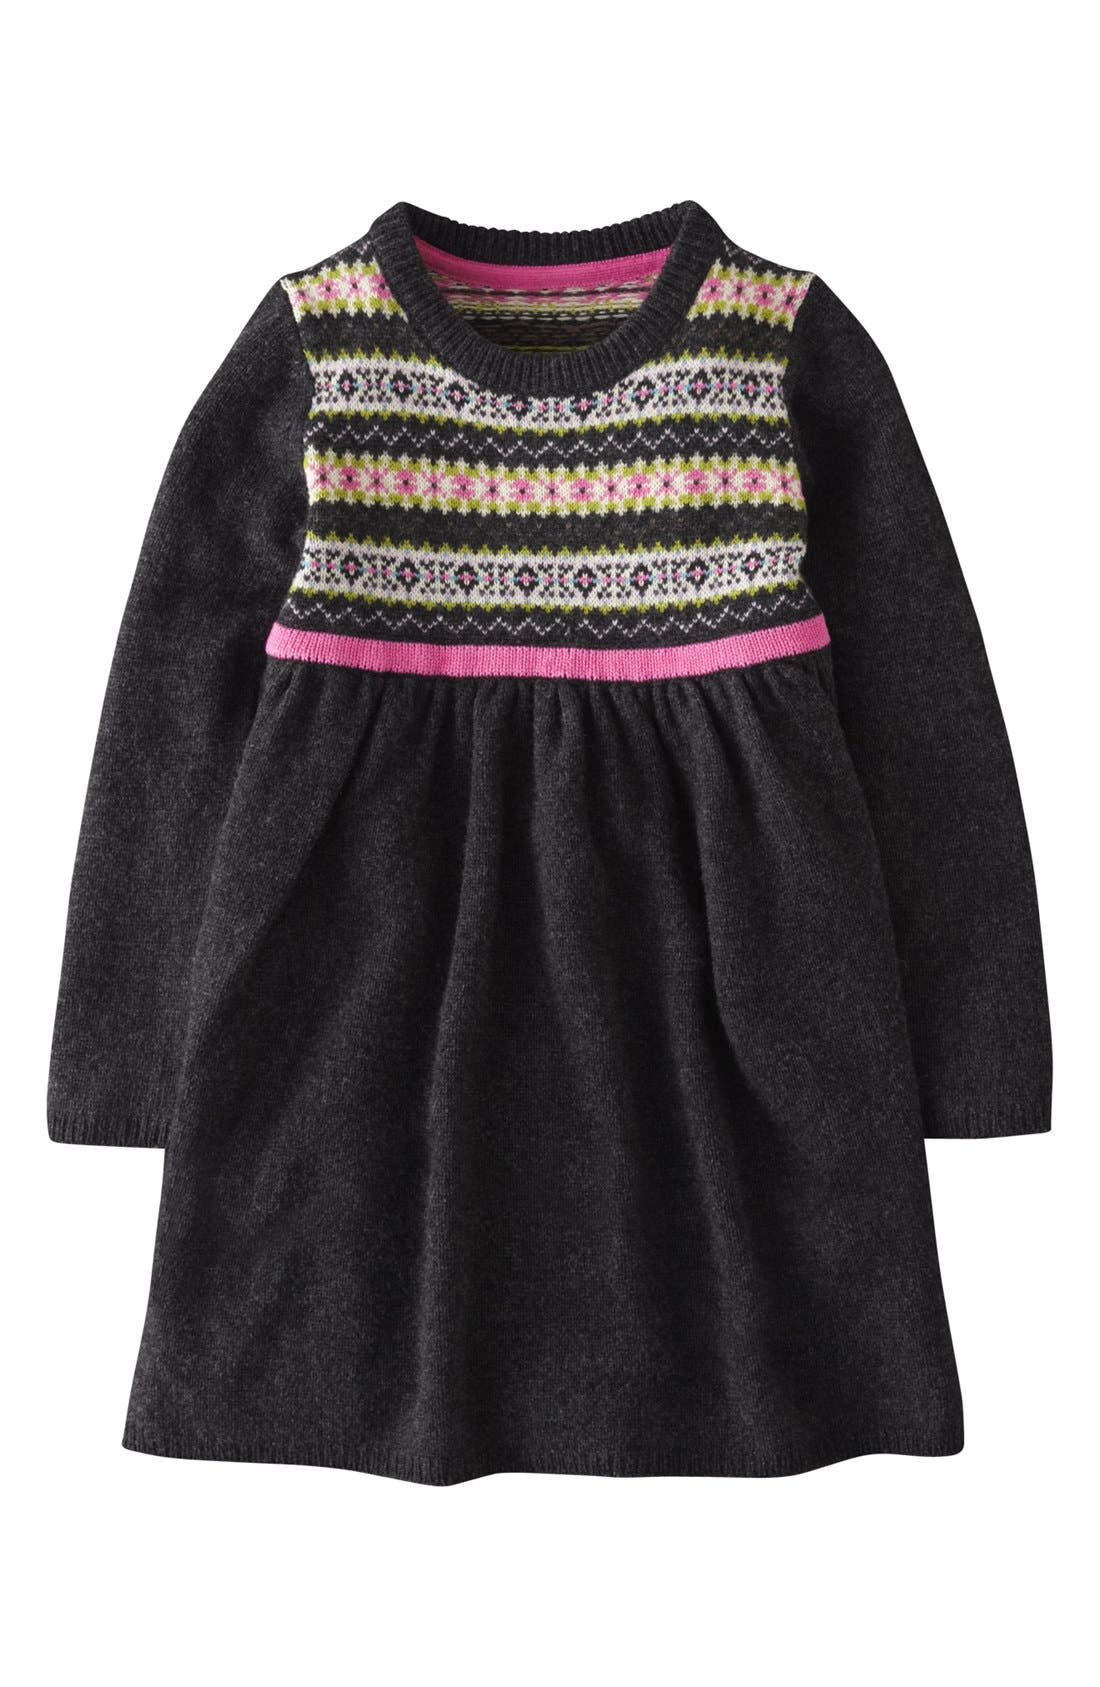 MINI BODEN Fair Isle Knit Dress, Main, color, 024